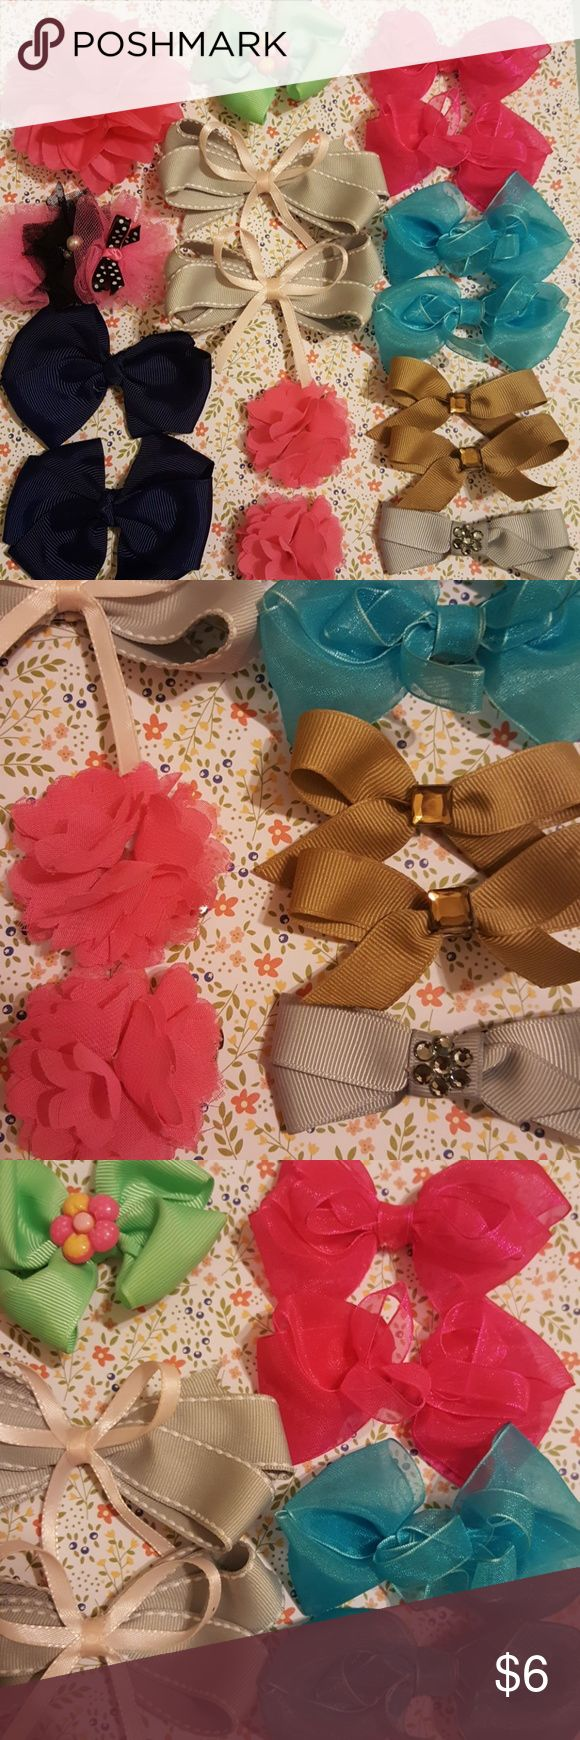 🎀 Little girl neon hair clip accessories 🎀 2 pairs of neon tone hair clips made of chiffon. All in good used condition. Fushia and electric blue. Make two pony tails add the bows, and voila, she is ready! Add any of these bows to a dress or outfit listing. Accessories Hair Accessories